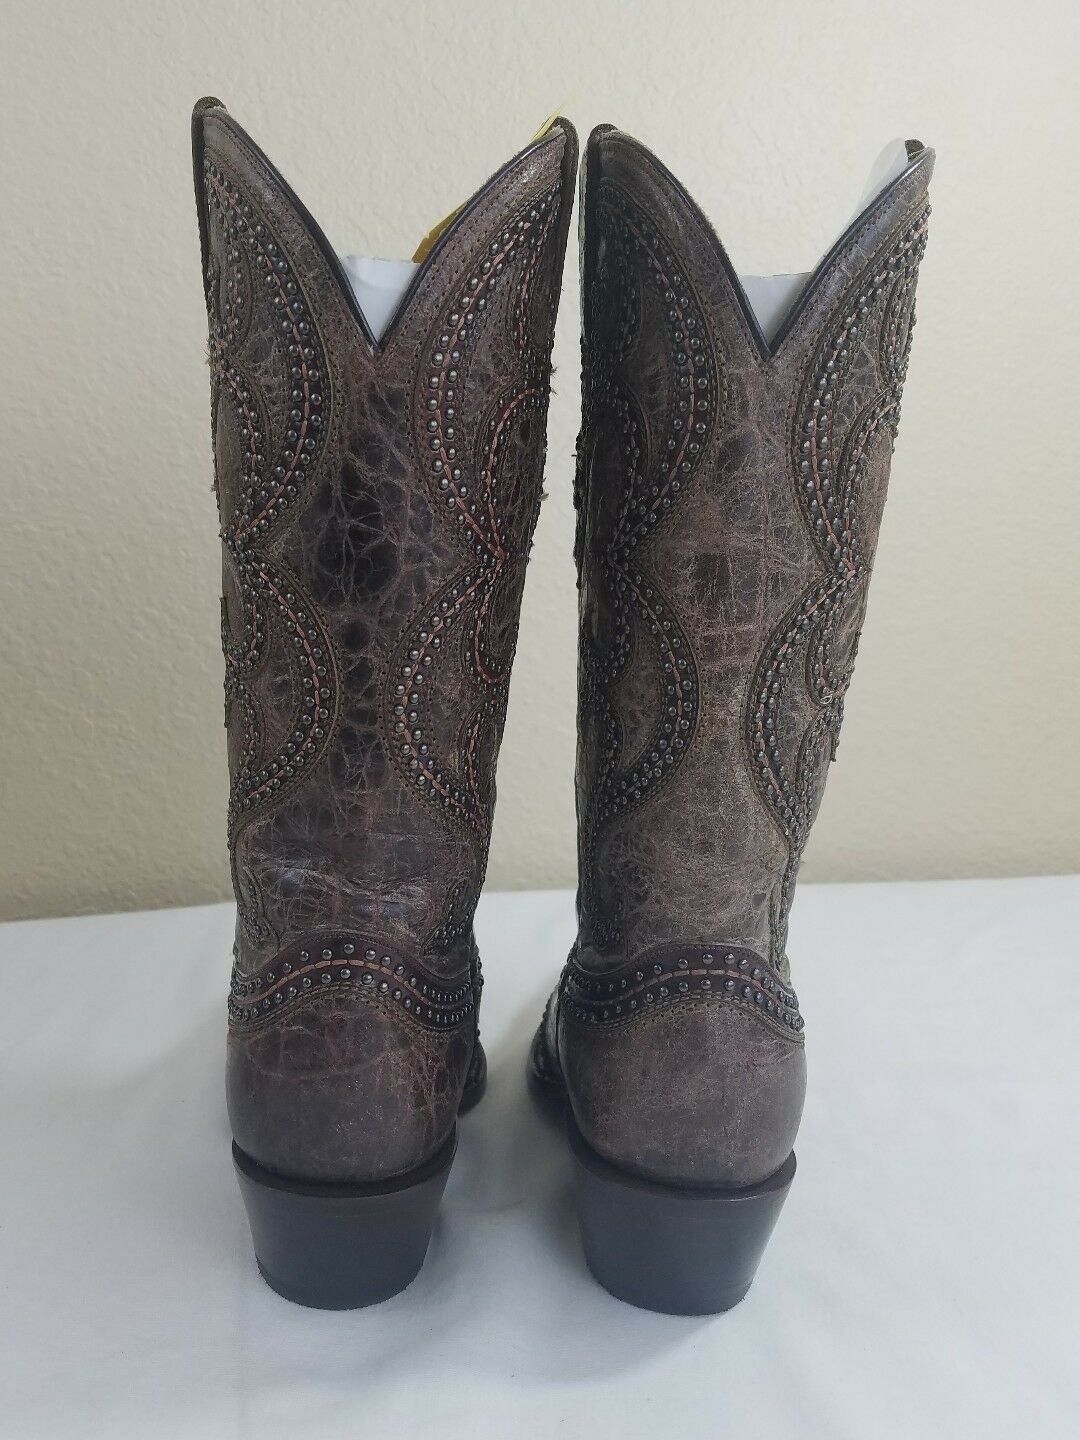 Women's Cowgirl Cowgirl Cowgirl Boots Distressed Studded Overlay Boot Brown 7 Snip Toe deb818